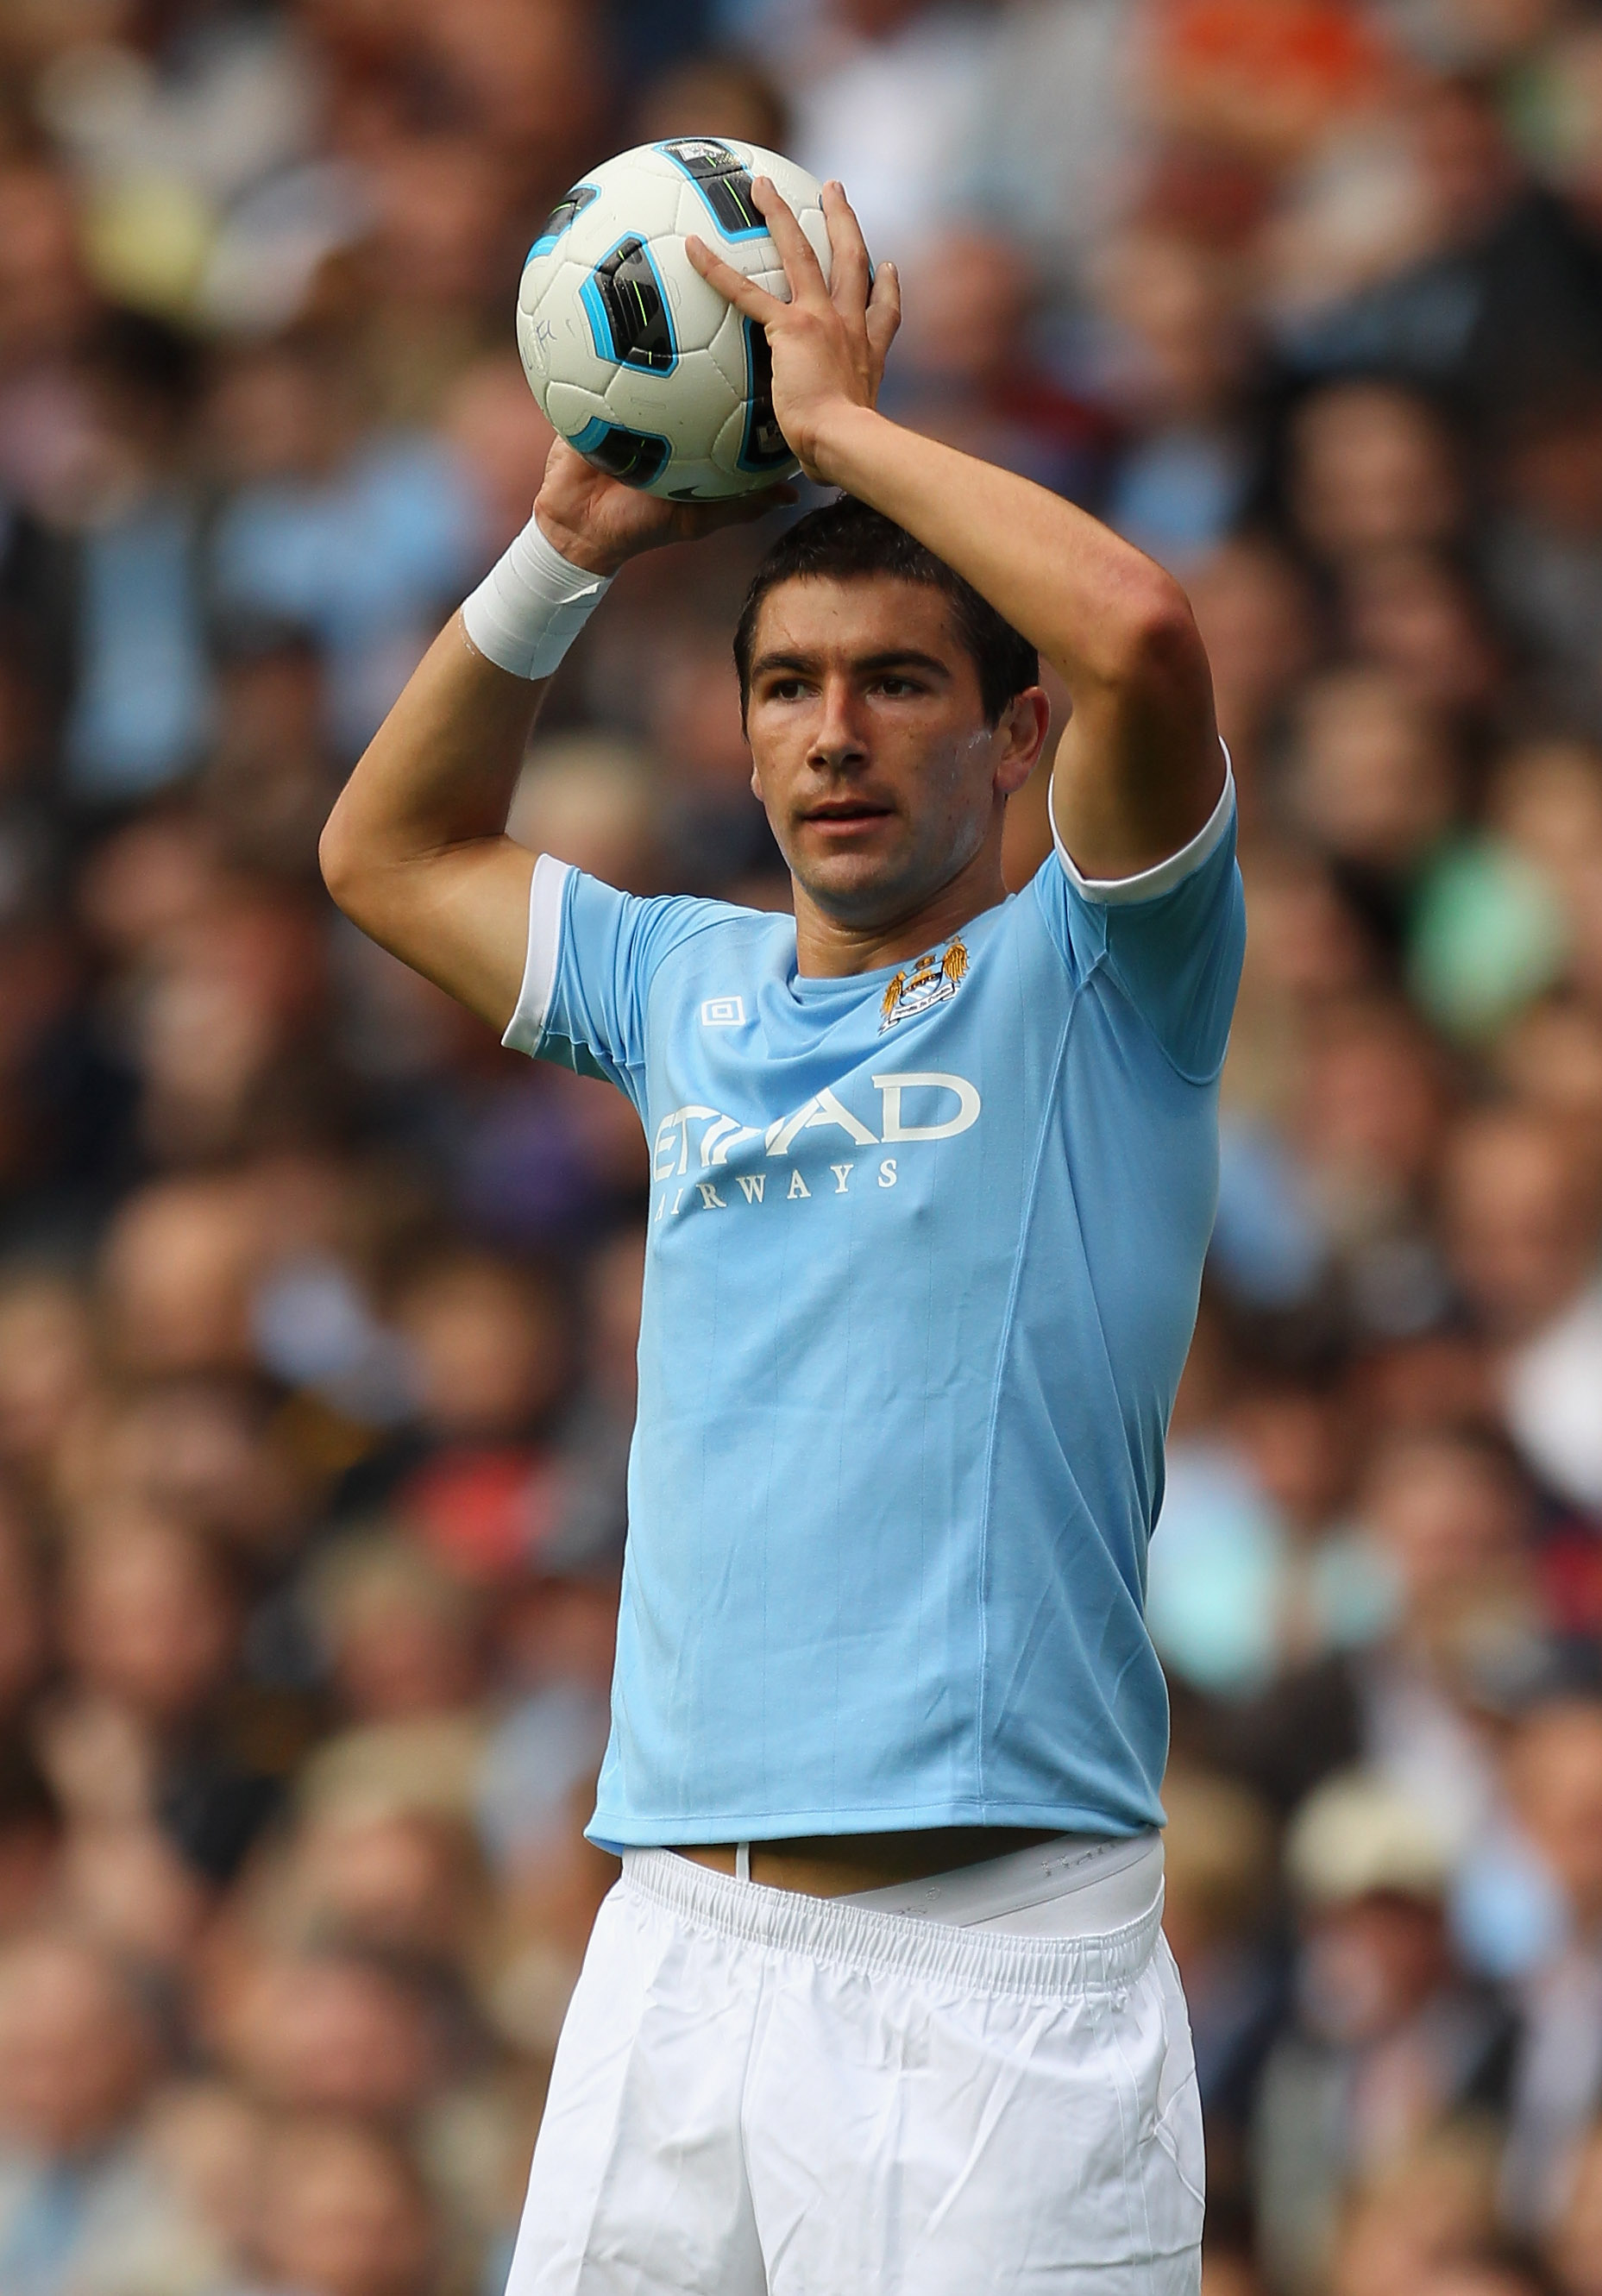 MANCHESTER, ENGLAND - AUGUST 07:  Aleksandar Kolarov of Manchester City takes a throw in during the pre-season friendly match between Manchester City and Valencia at the City of Manchester Stadium on August 7, 2010 in Manchester, England.  (Photo by Alex